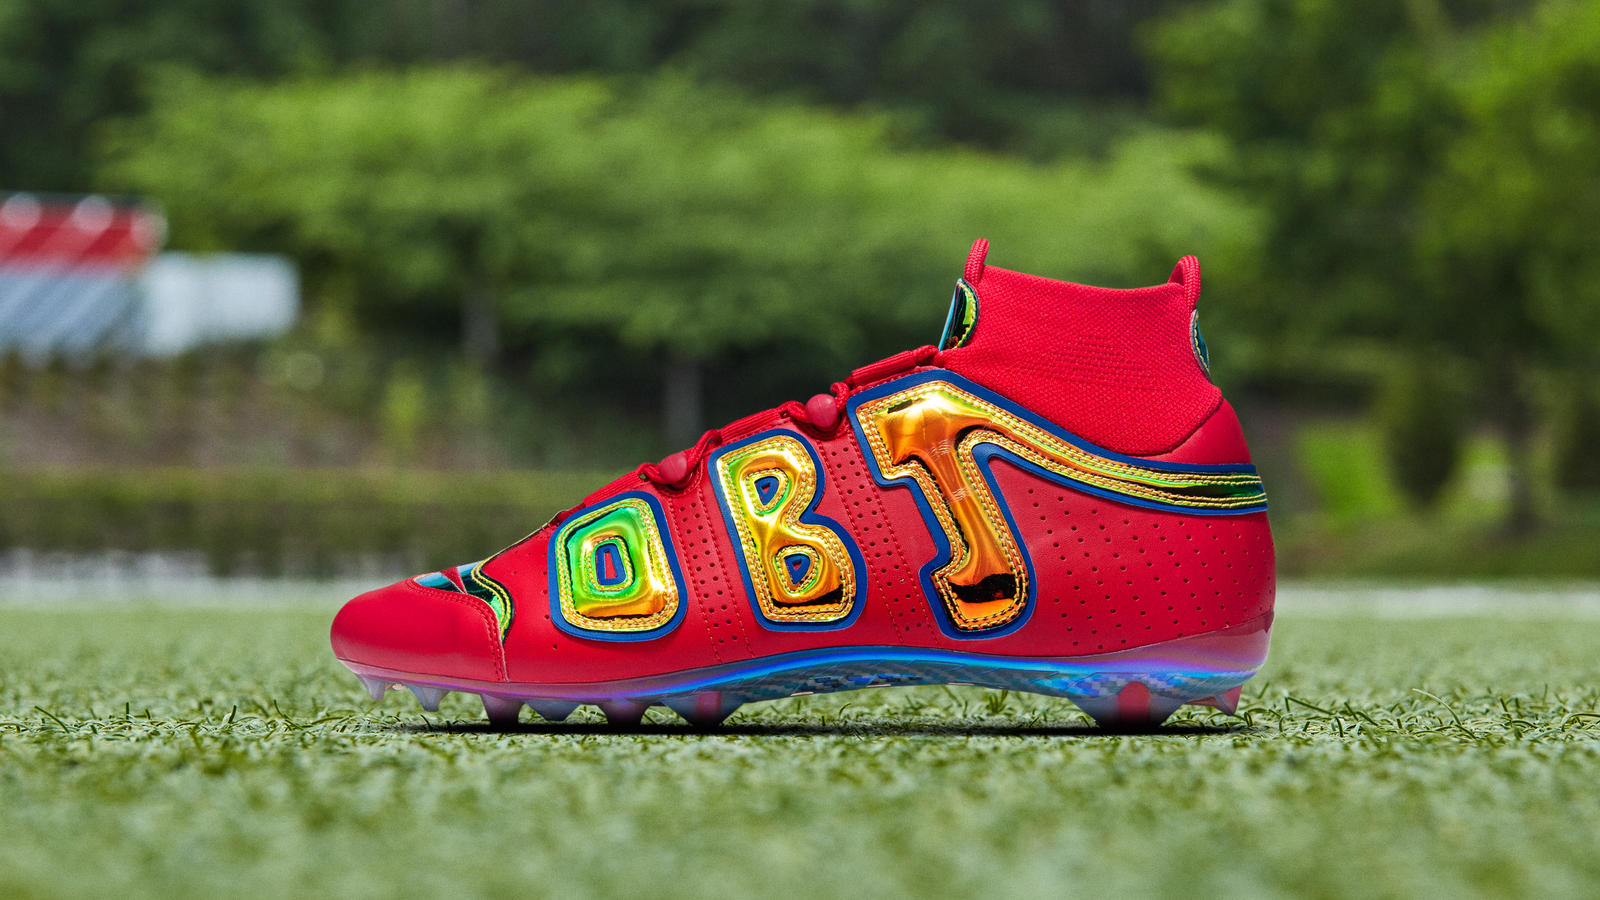 Featuredfootwear obj pregame 11.12.18 969 hd 1600